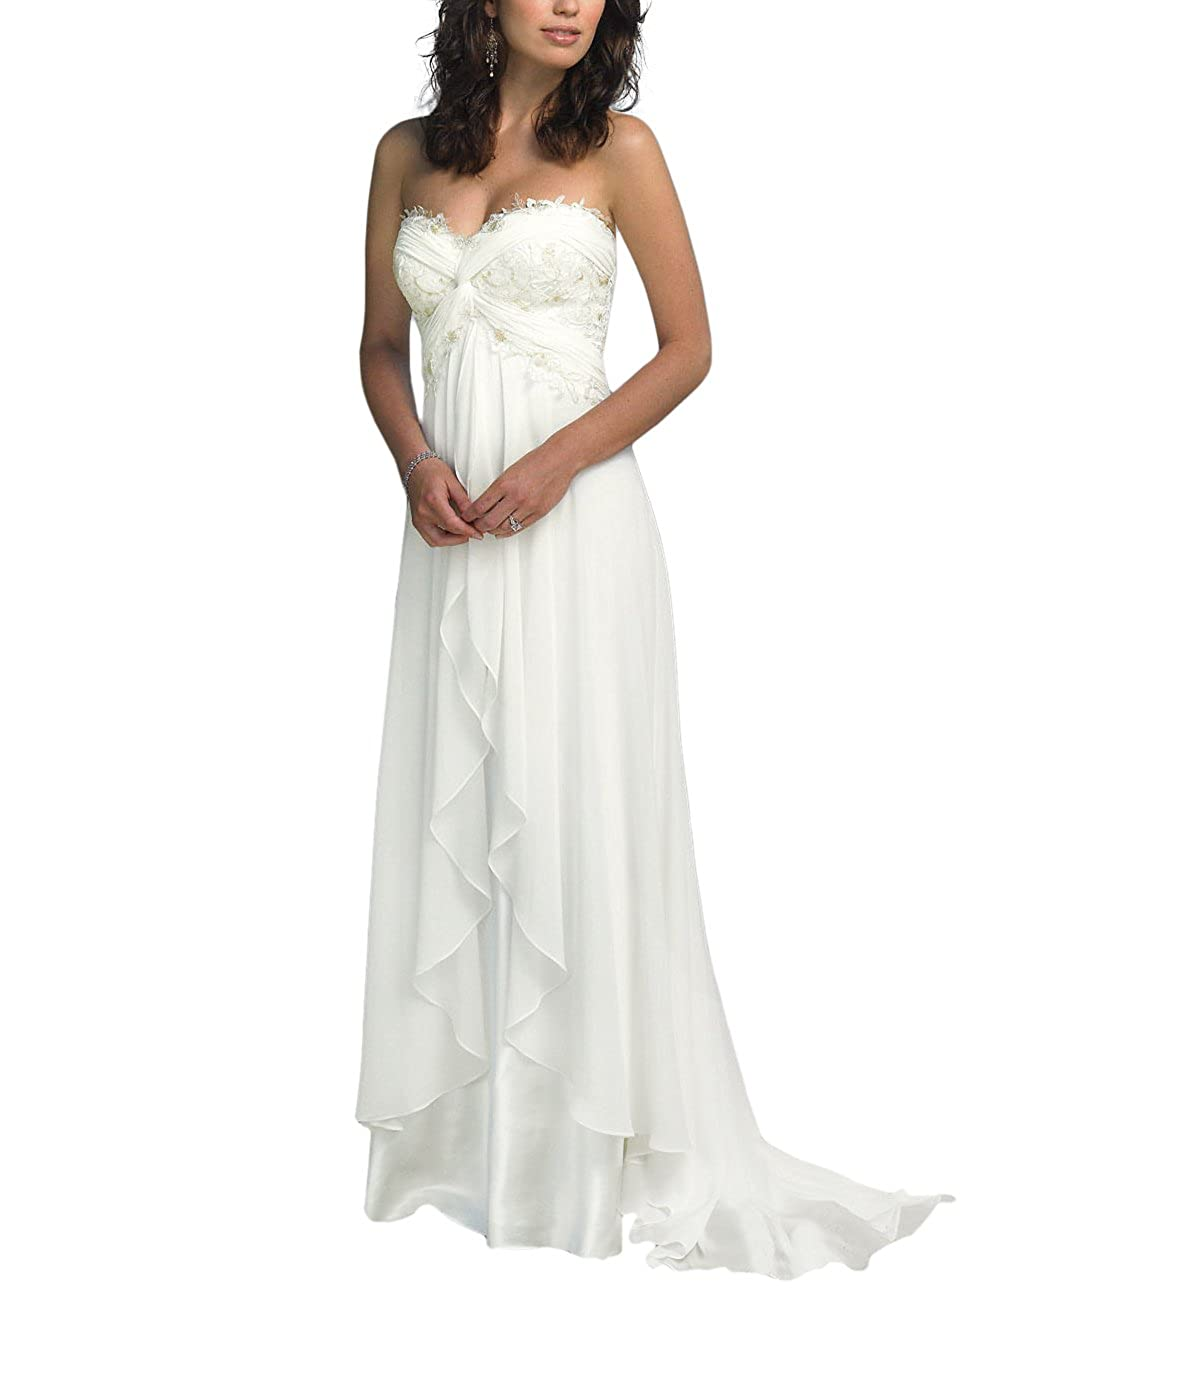 891e9ebcde1b2 Amazon.com: Special Bridal Beach Wedding Dress Chiffon Tulle Lace Bridal  Gown A line Dress: Clothing